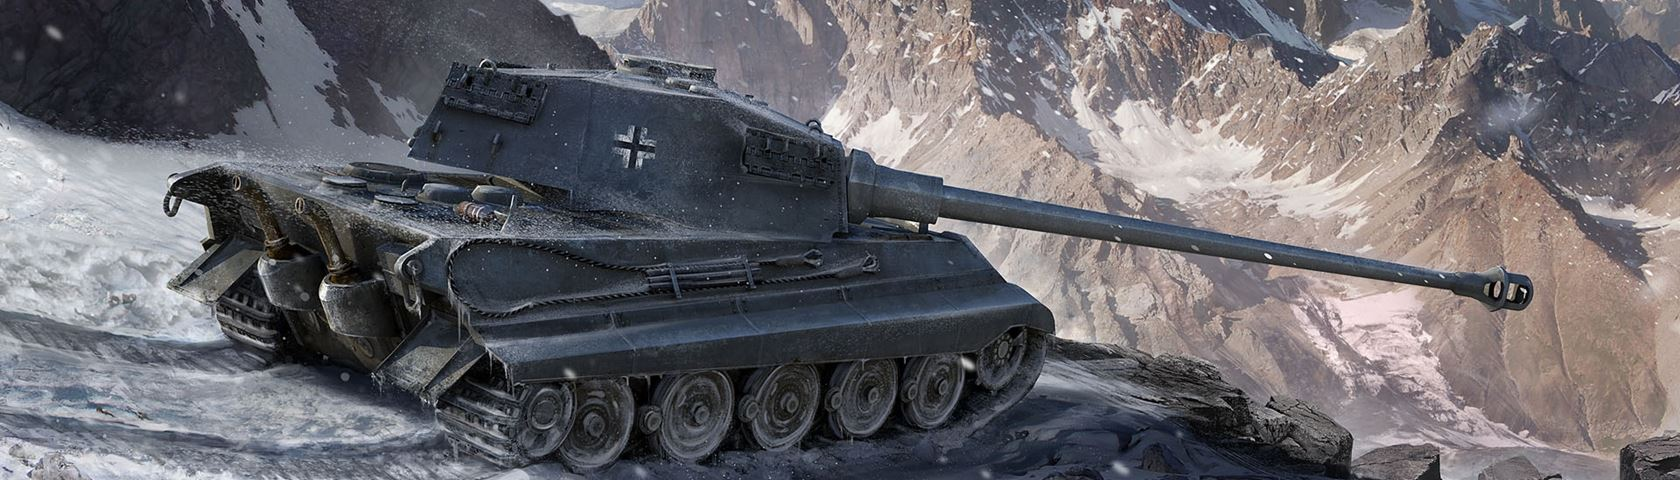 World of Tanks: Tiger II